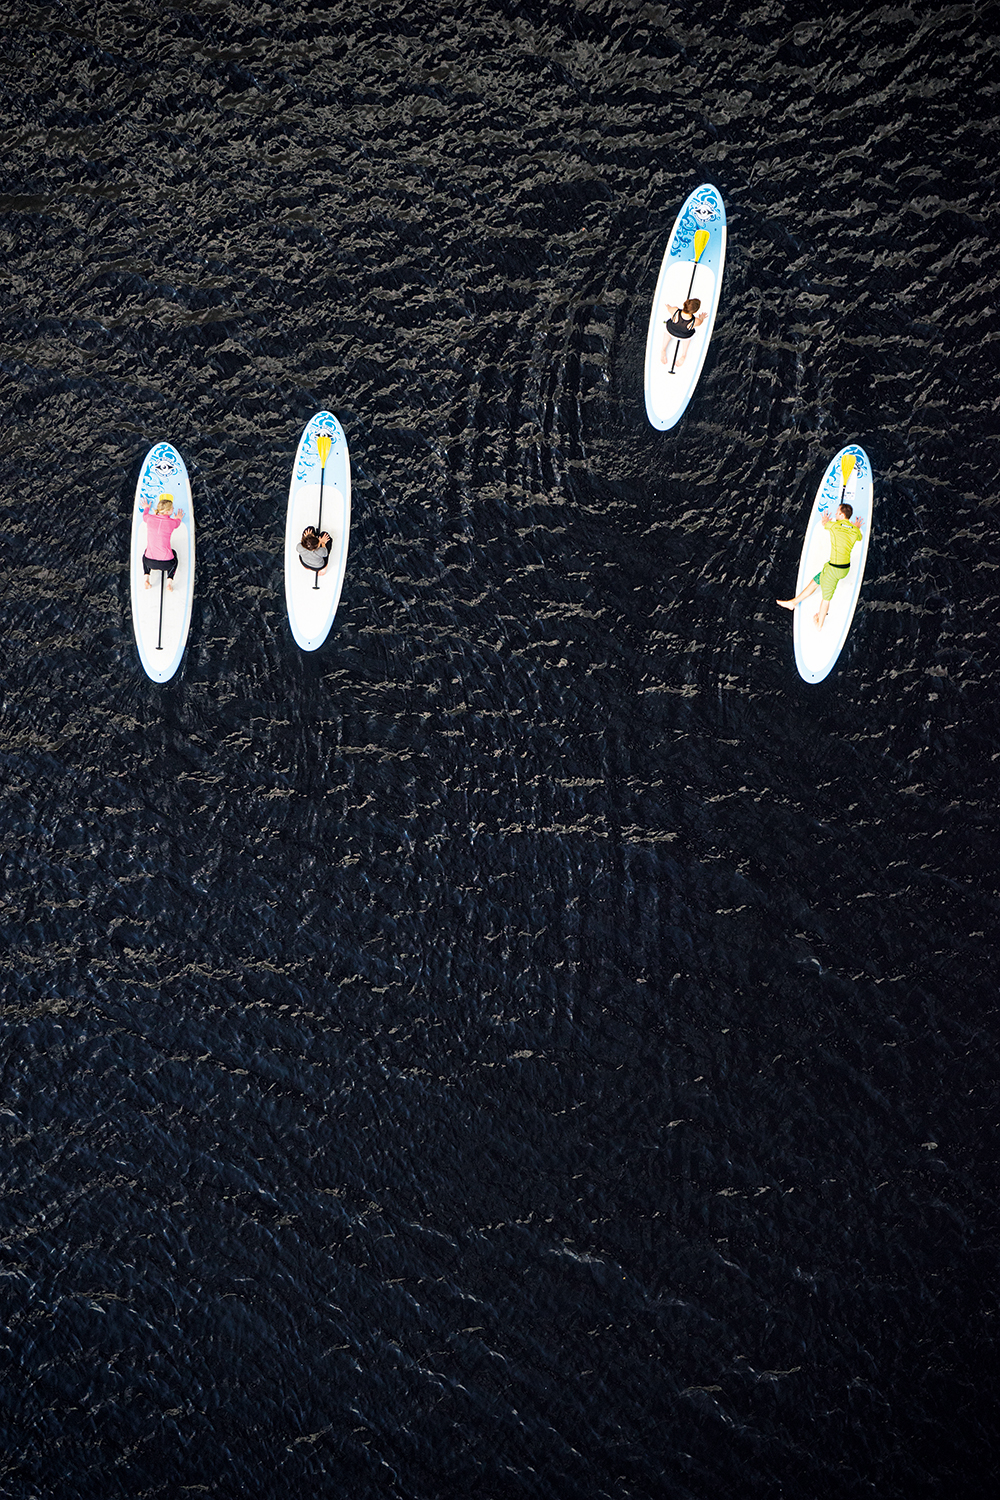 Anders_Andersson-surf-boards.jpg